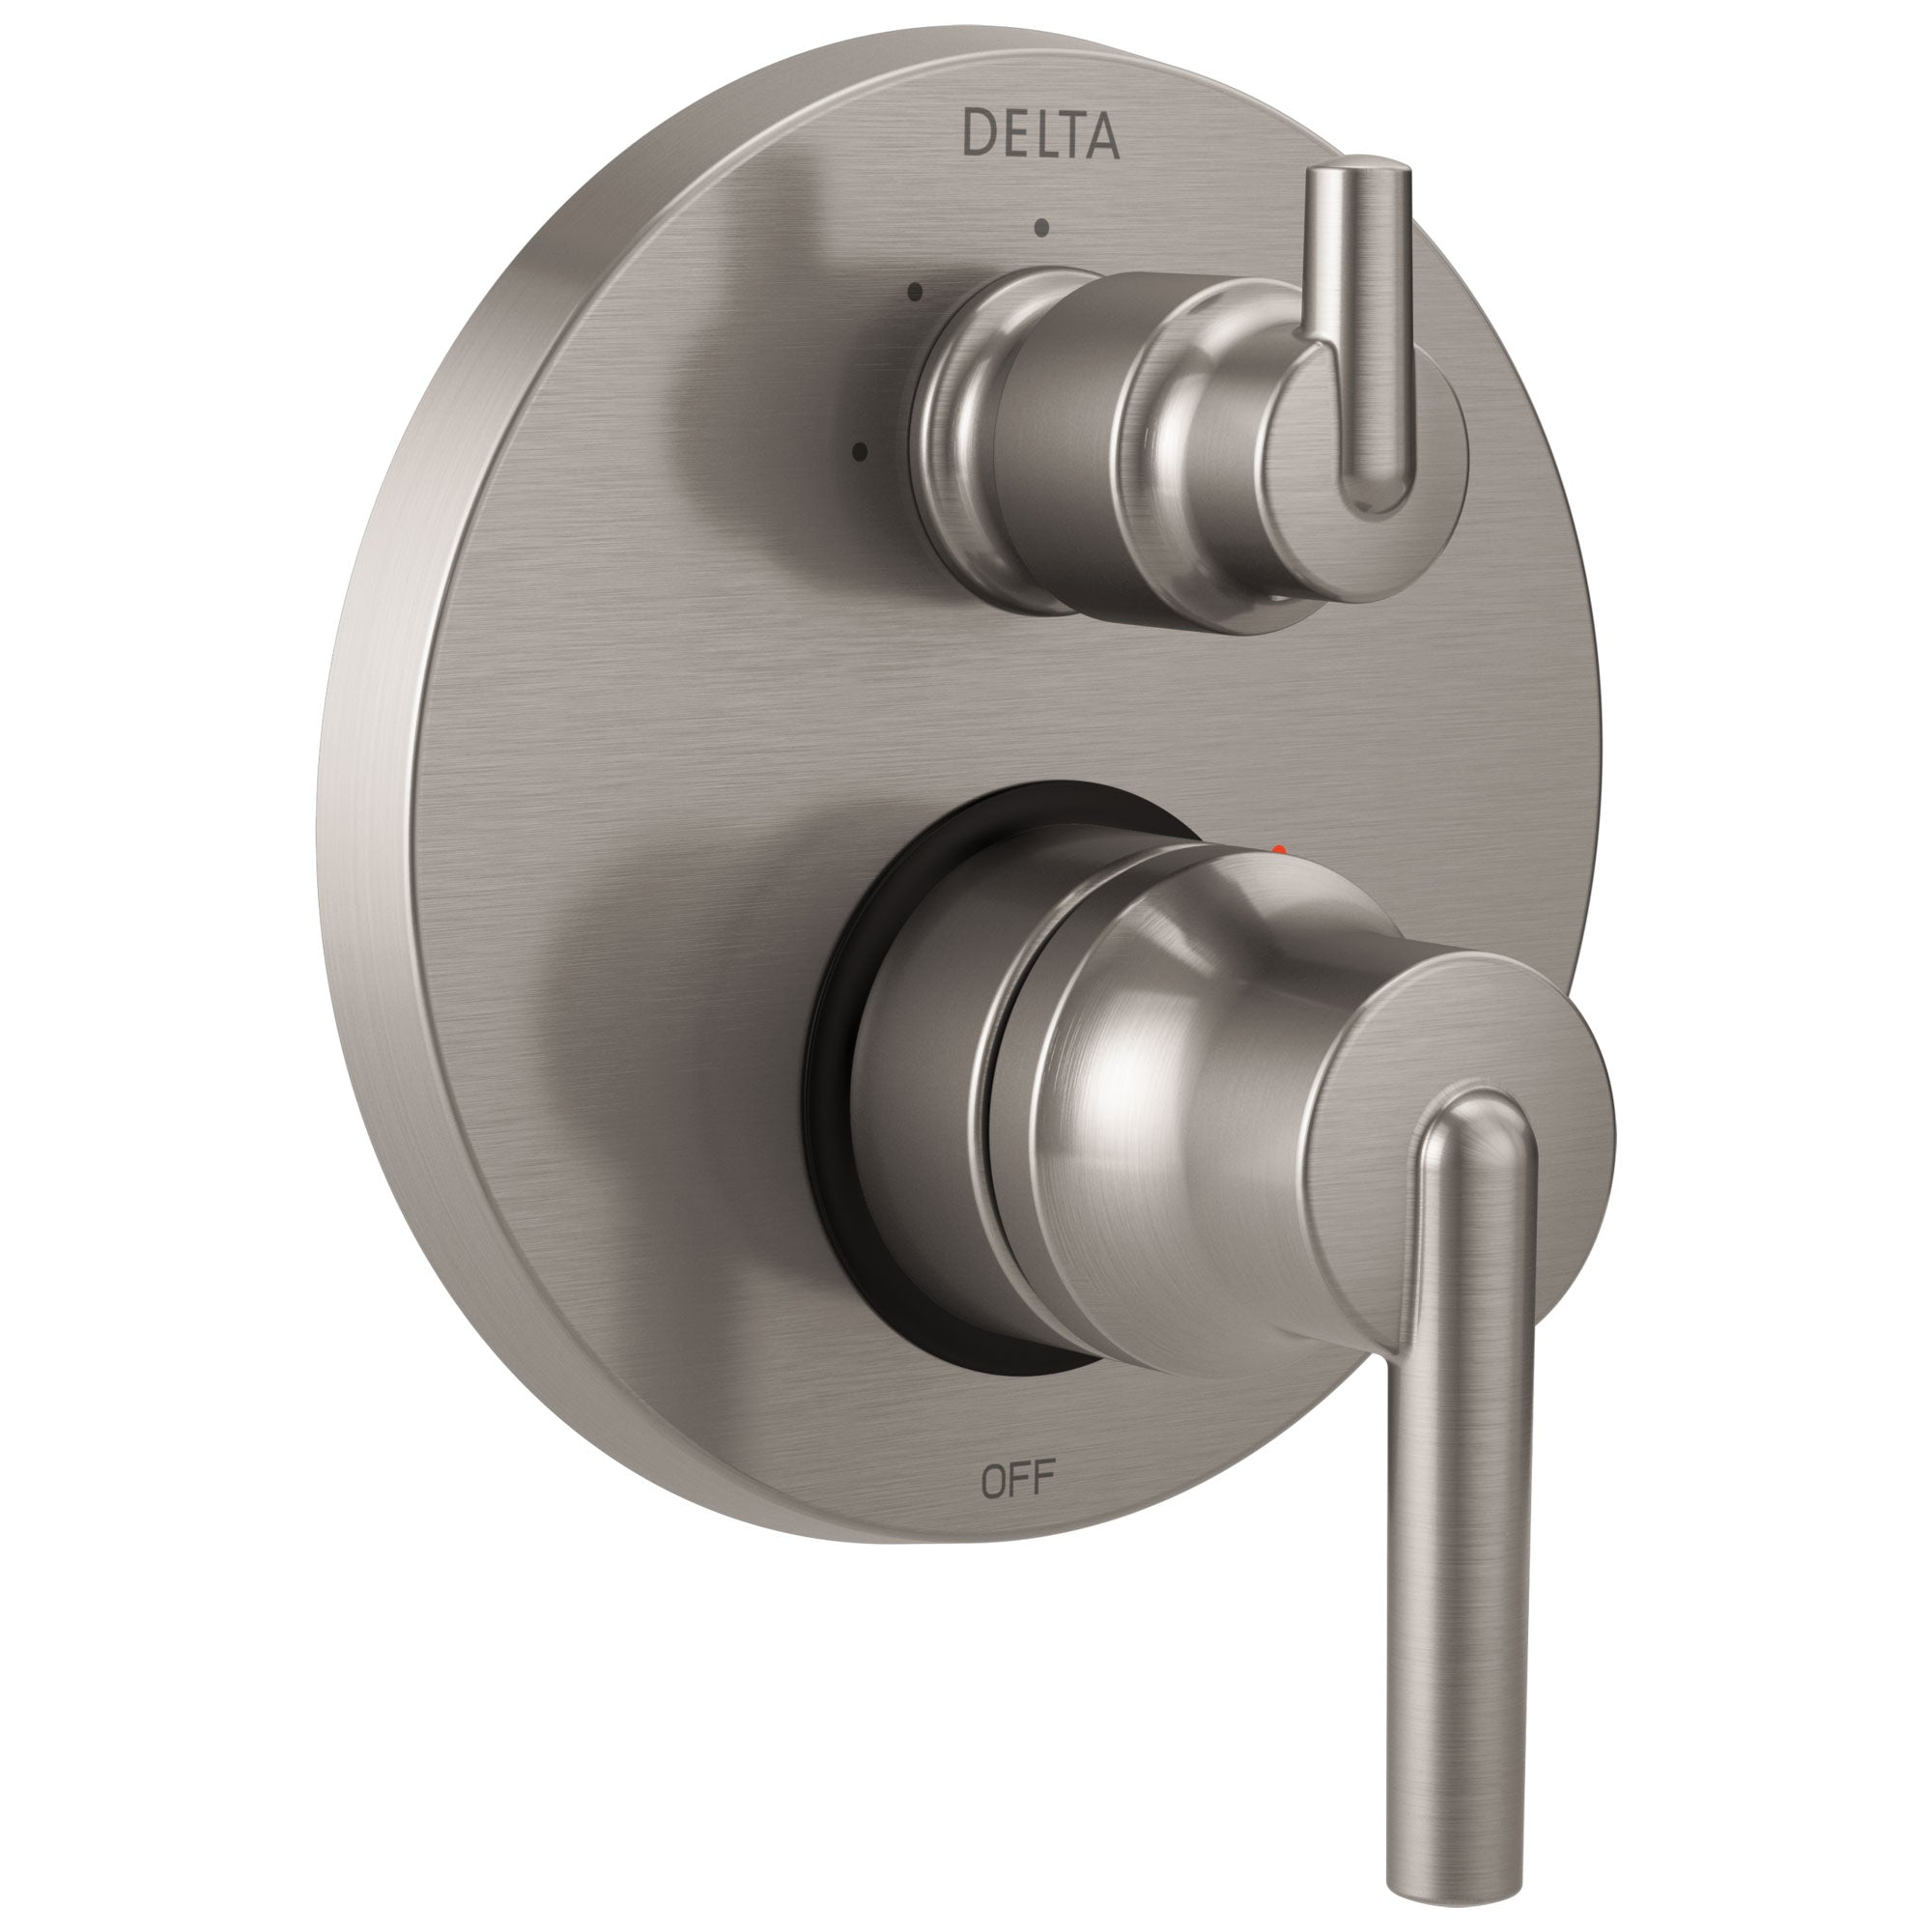 Delta Trinsic Collection Stainless Steel Finish Shower Faucet Valve Trim Control Handle with 3-Setting Integrated Diverter (Requires Valve) DT24859SS